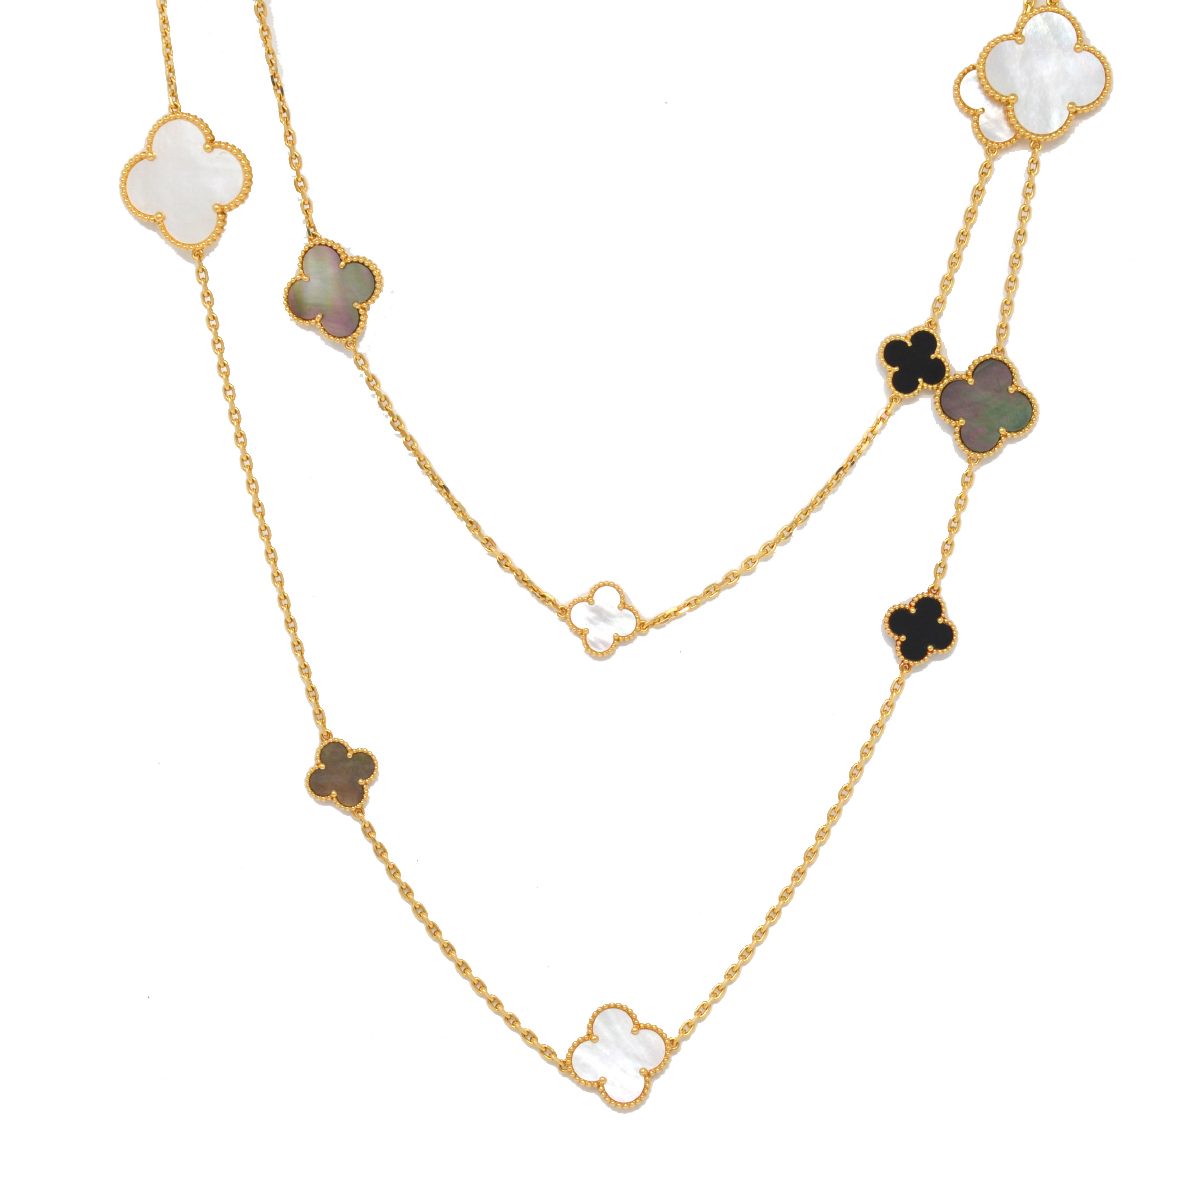 Van Cleef & Arpels 18k Yellow Gold Magic Alhambra 16 Motif Long Necklace